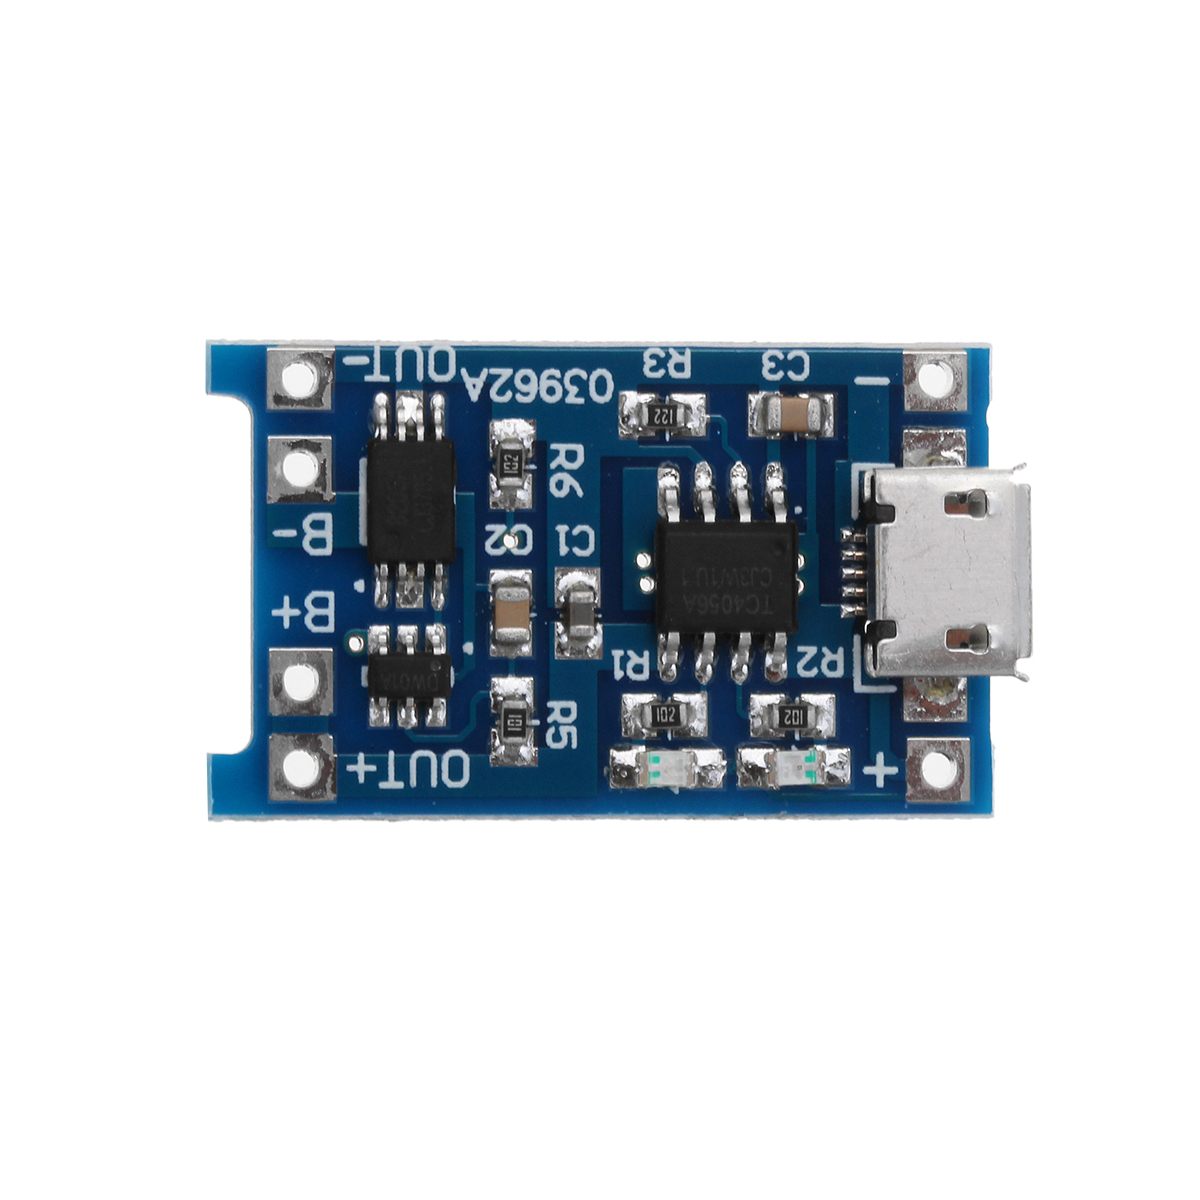 TP4056 Micro USB 5V 1A Lithium Battery Charging Protection Board TE585 Lipo Charger Module